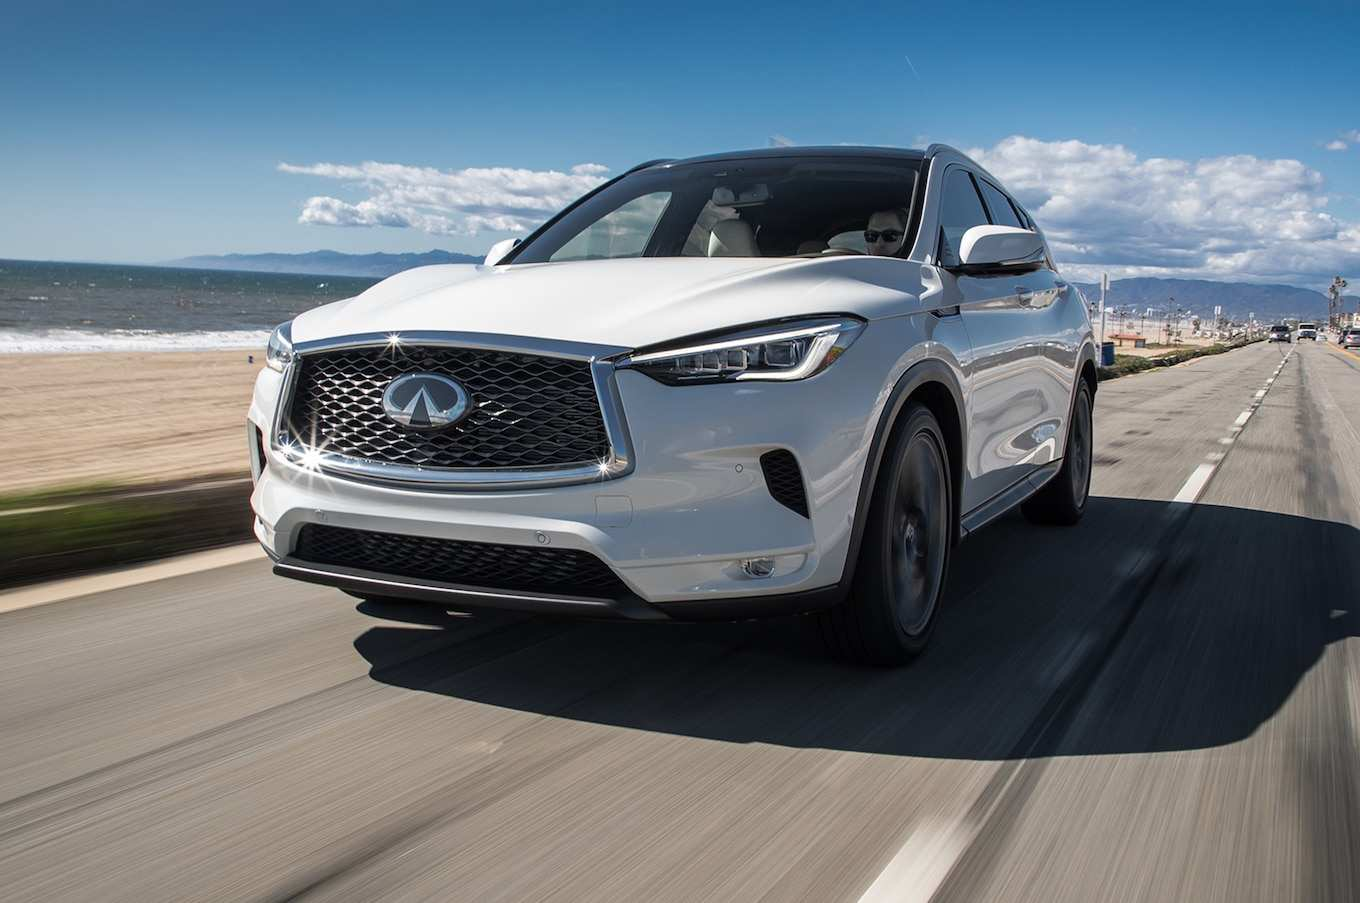 56 The 2019 Infiniti Fx50 Price And Release Date